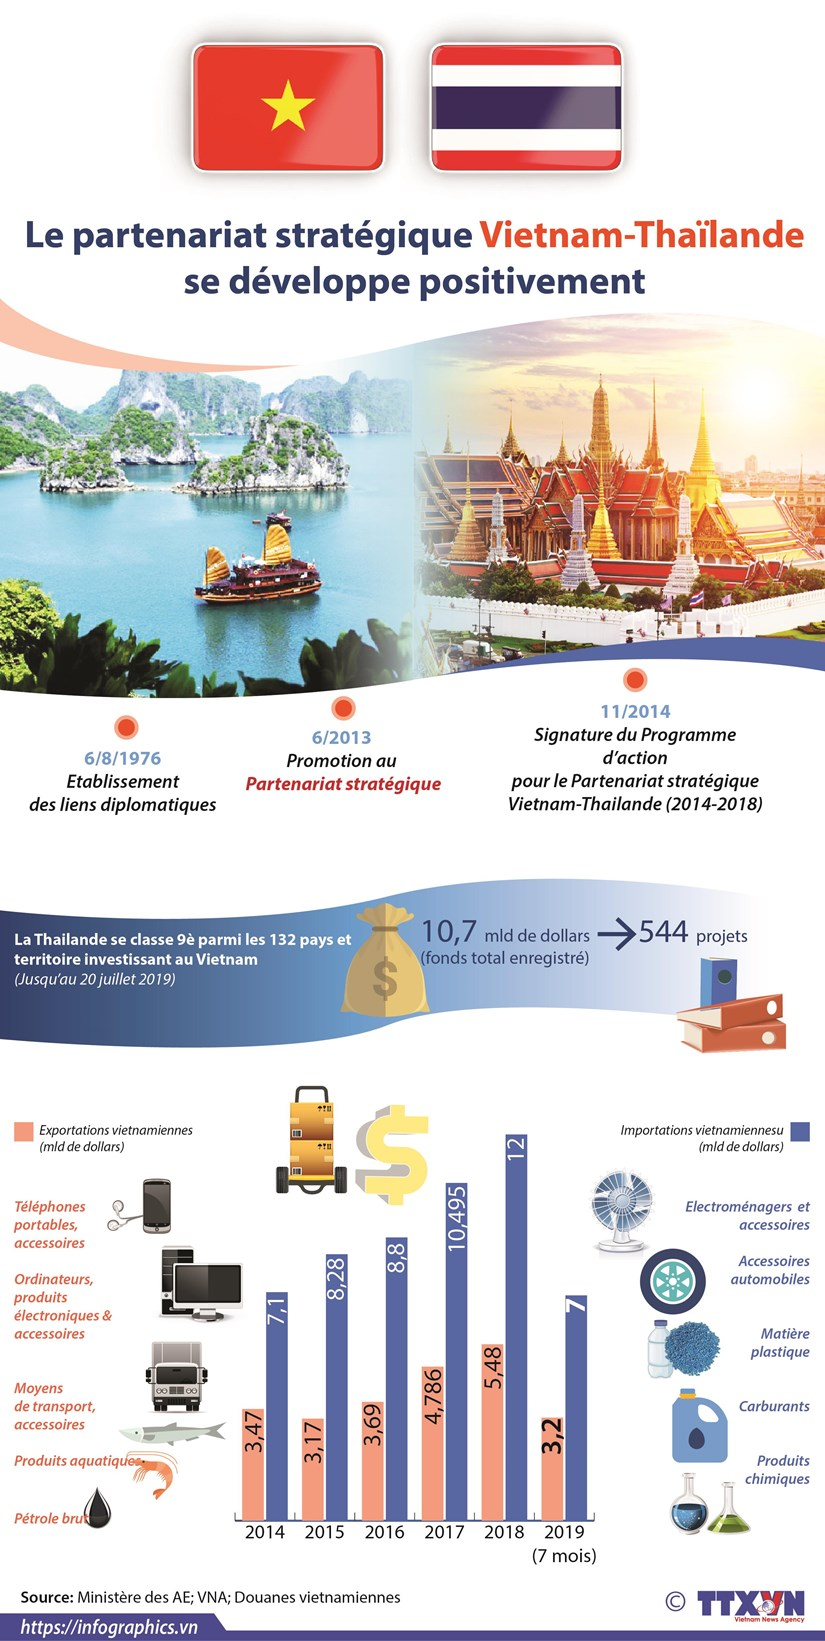 Le partenariat strategique Vietnam – Thailande se developpe positivement hinh anh 1